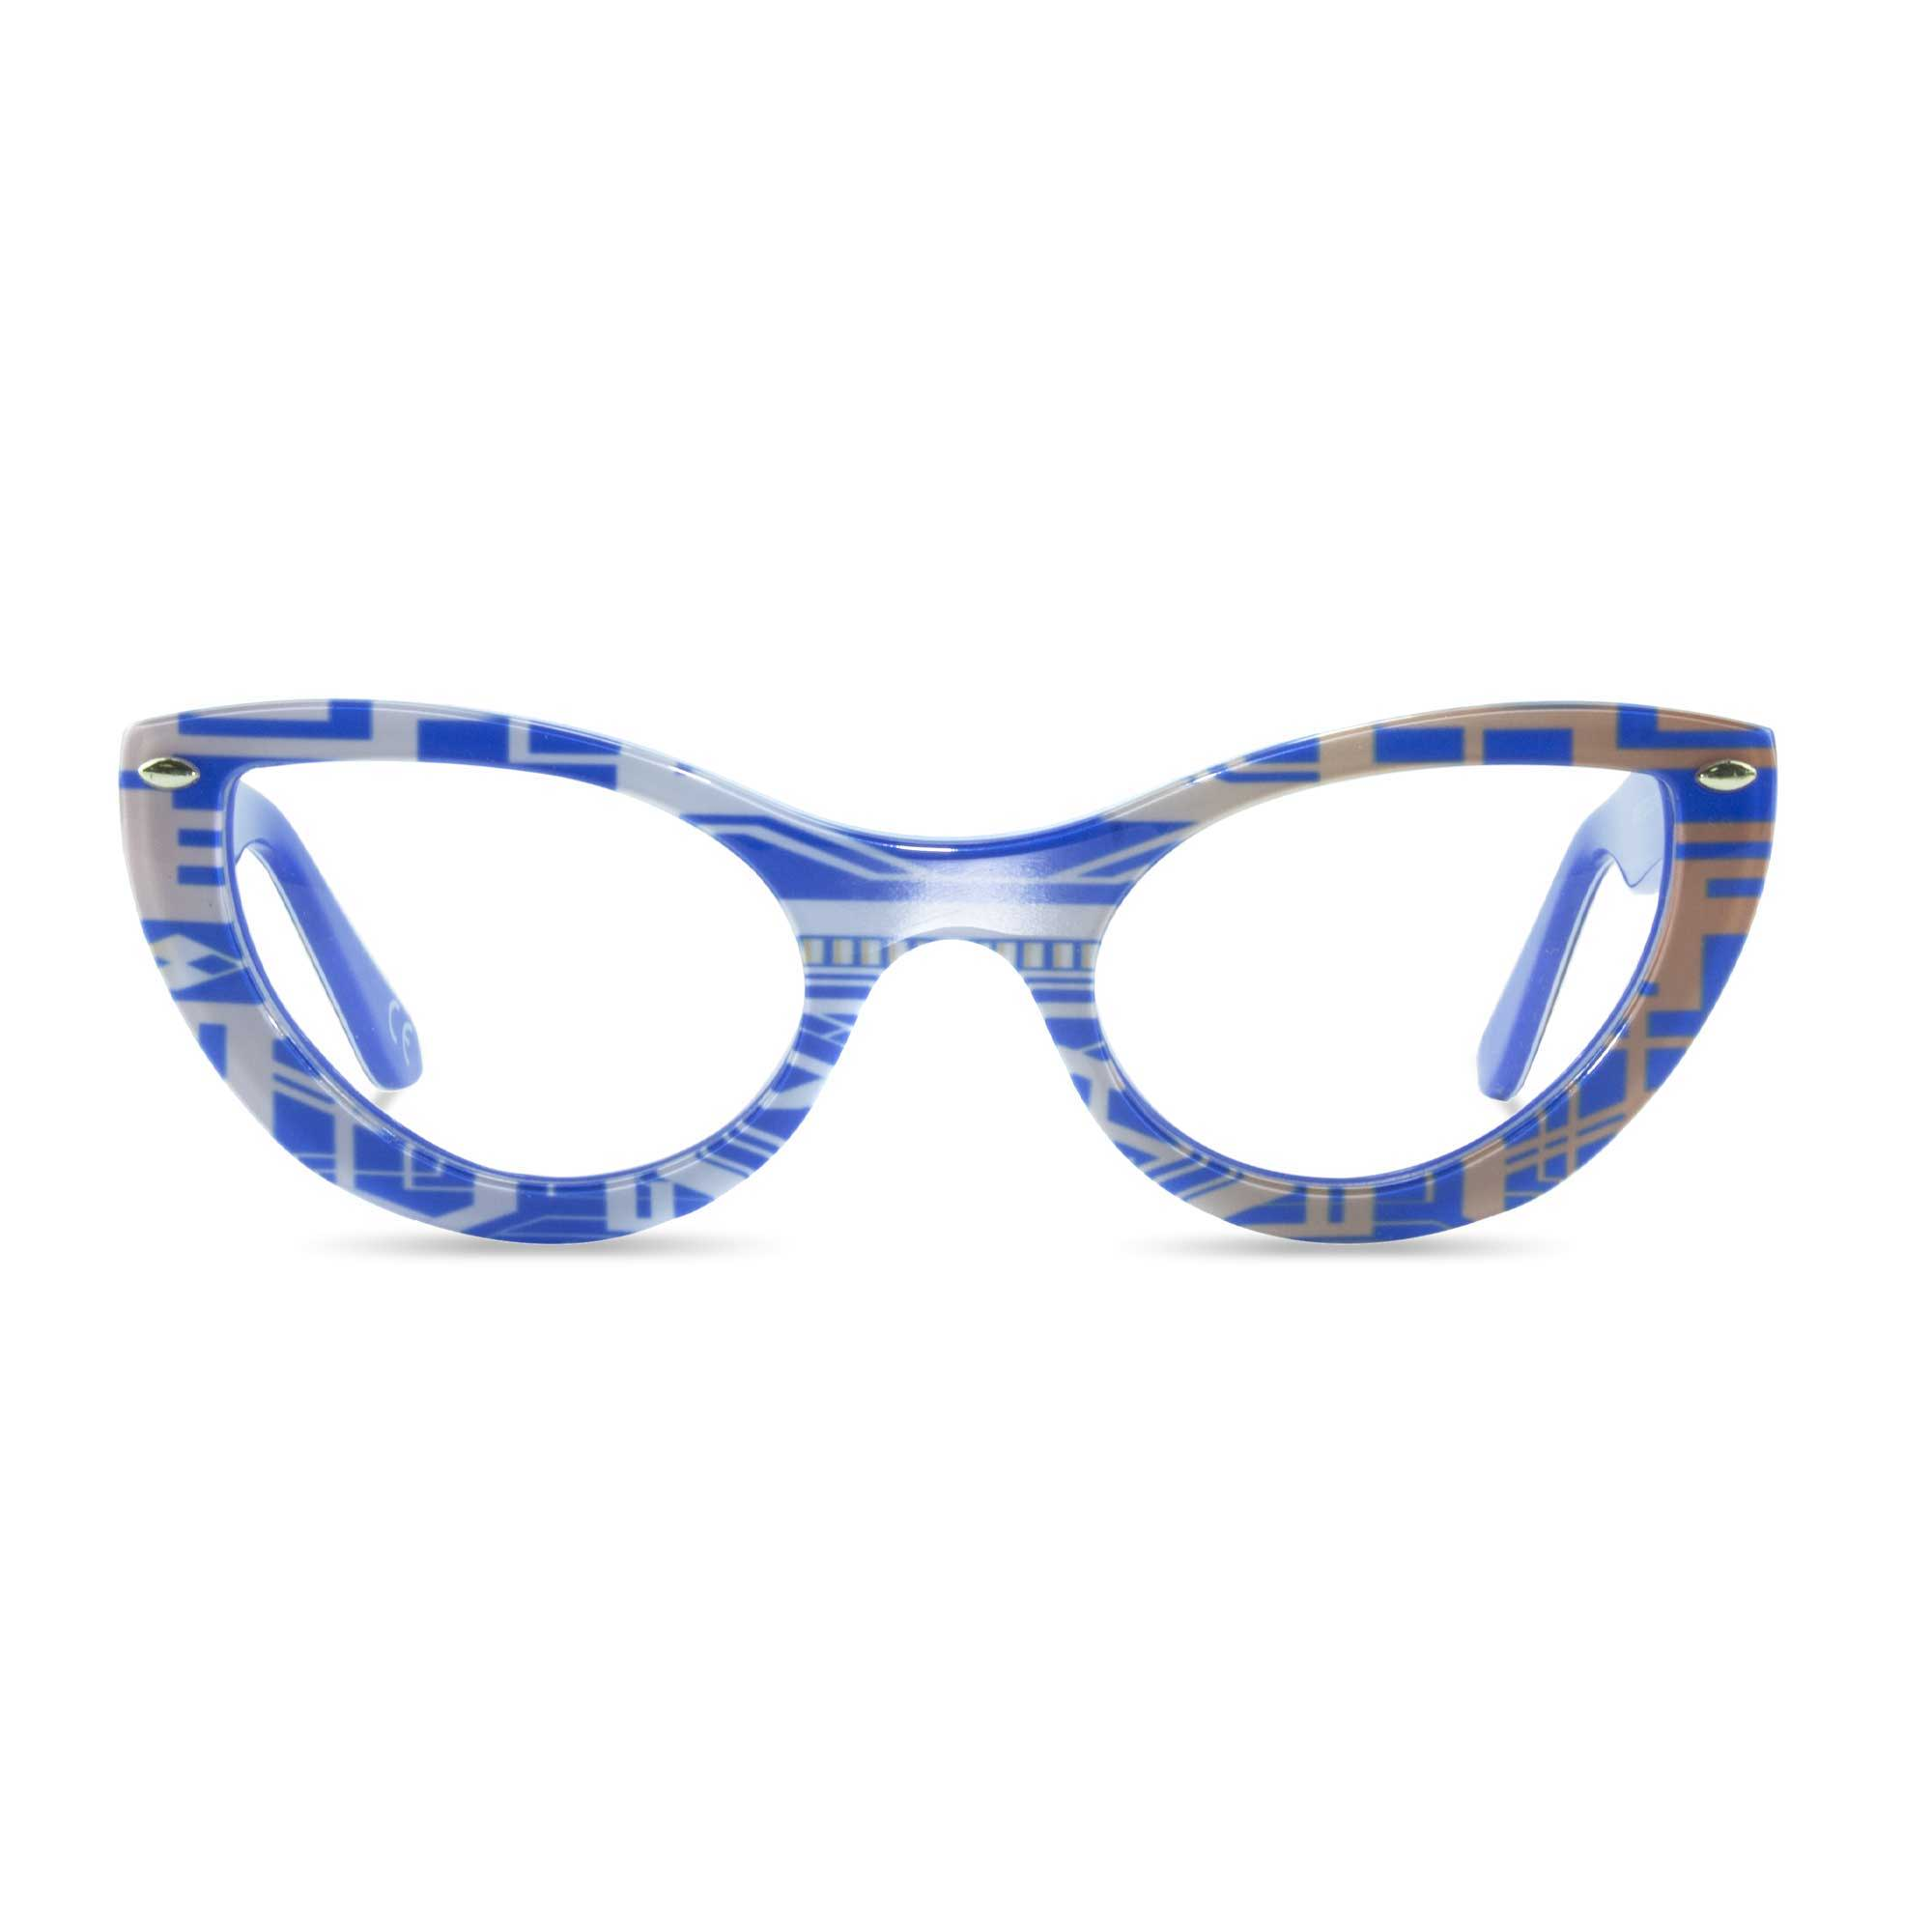 Joiuss gatsby blue & gold cat eye glasses